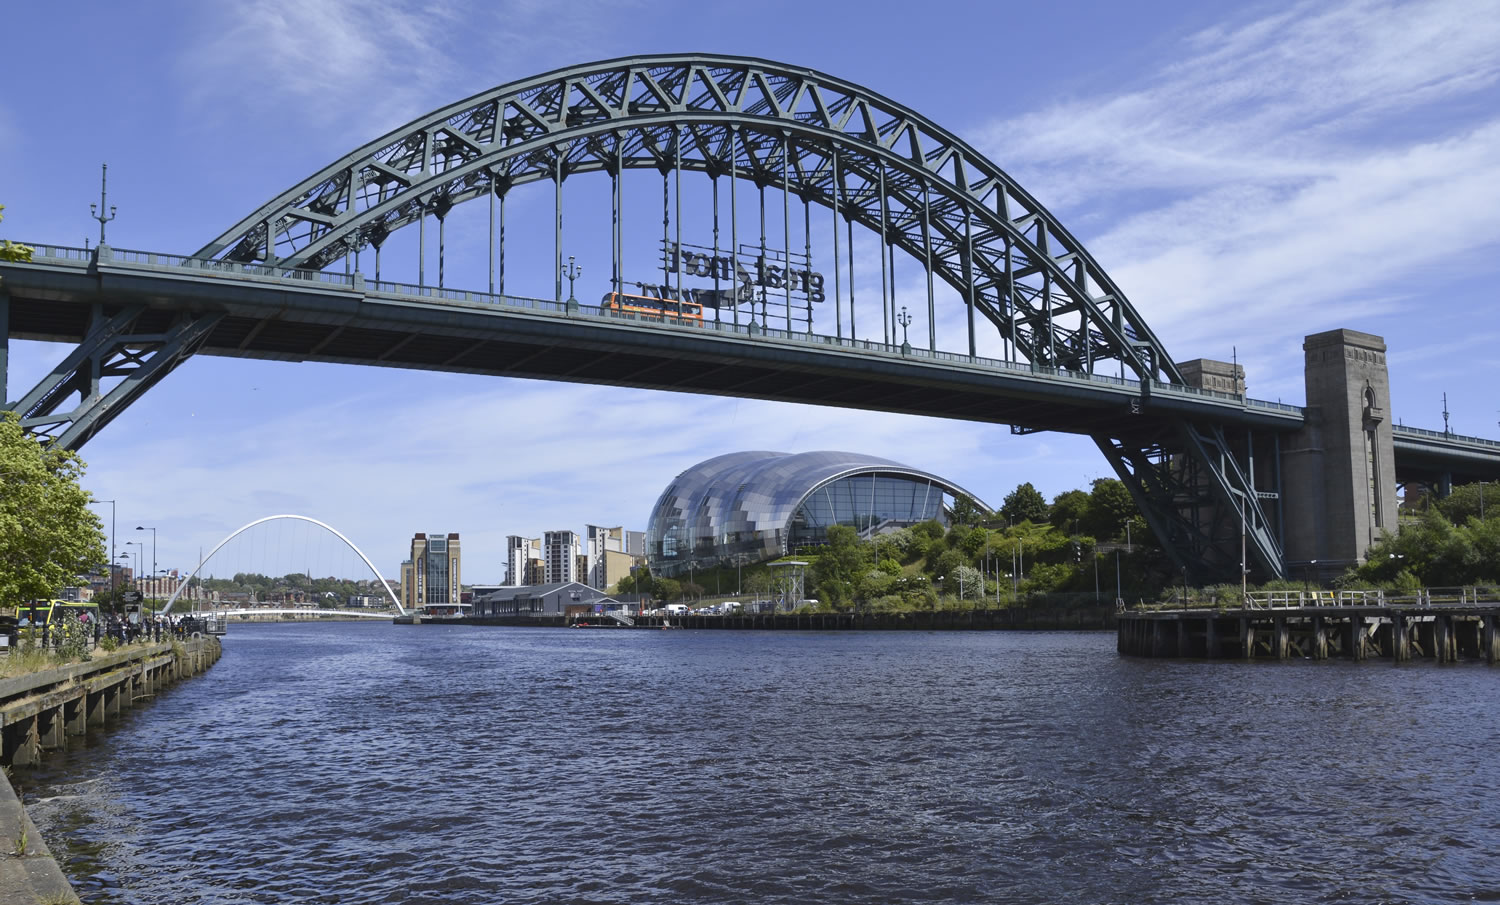 Tyne Bridge Wallpaper Mural